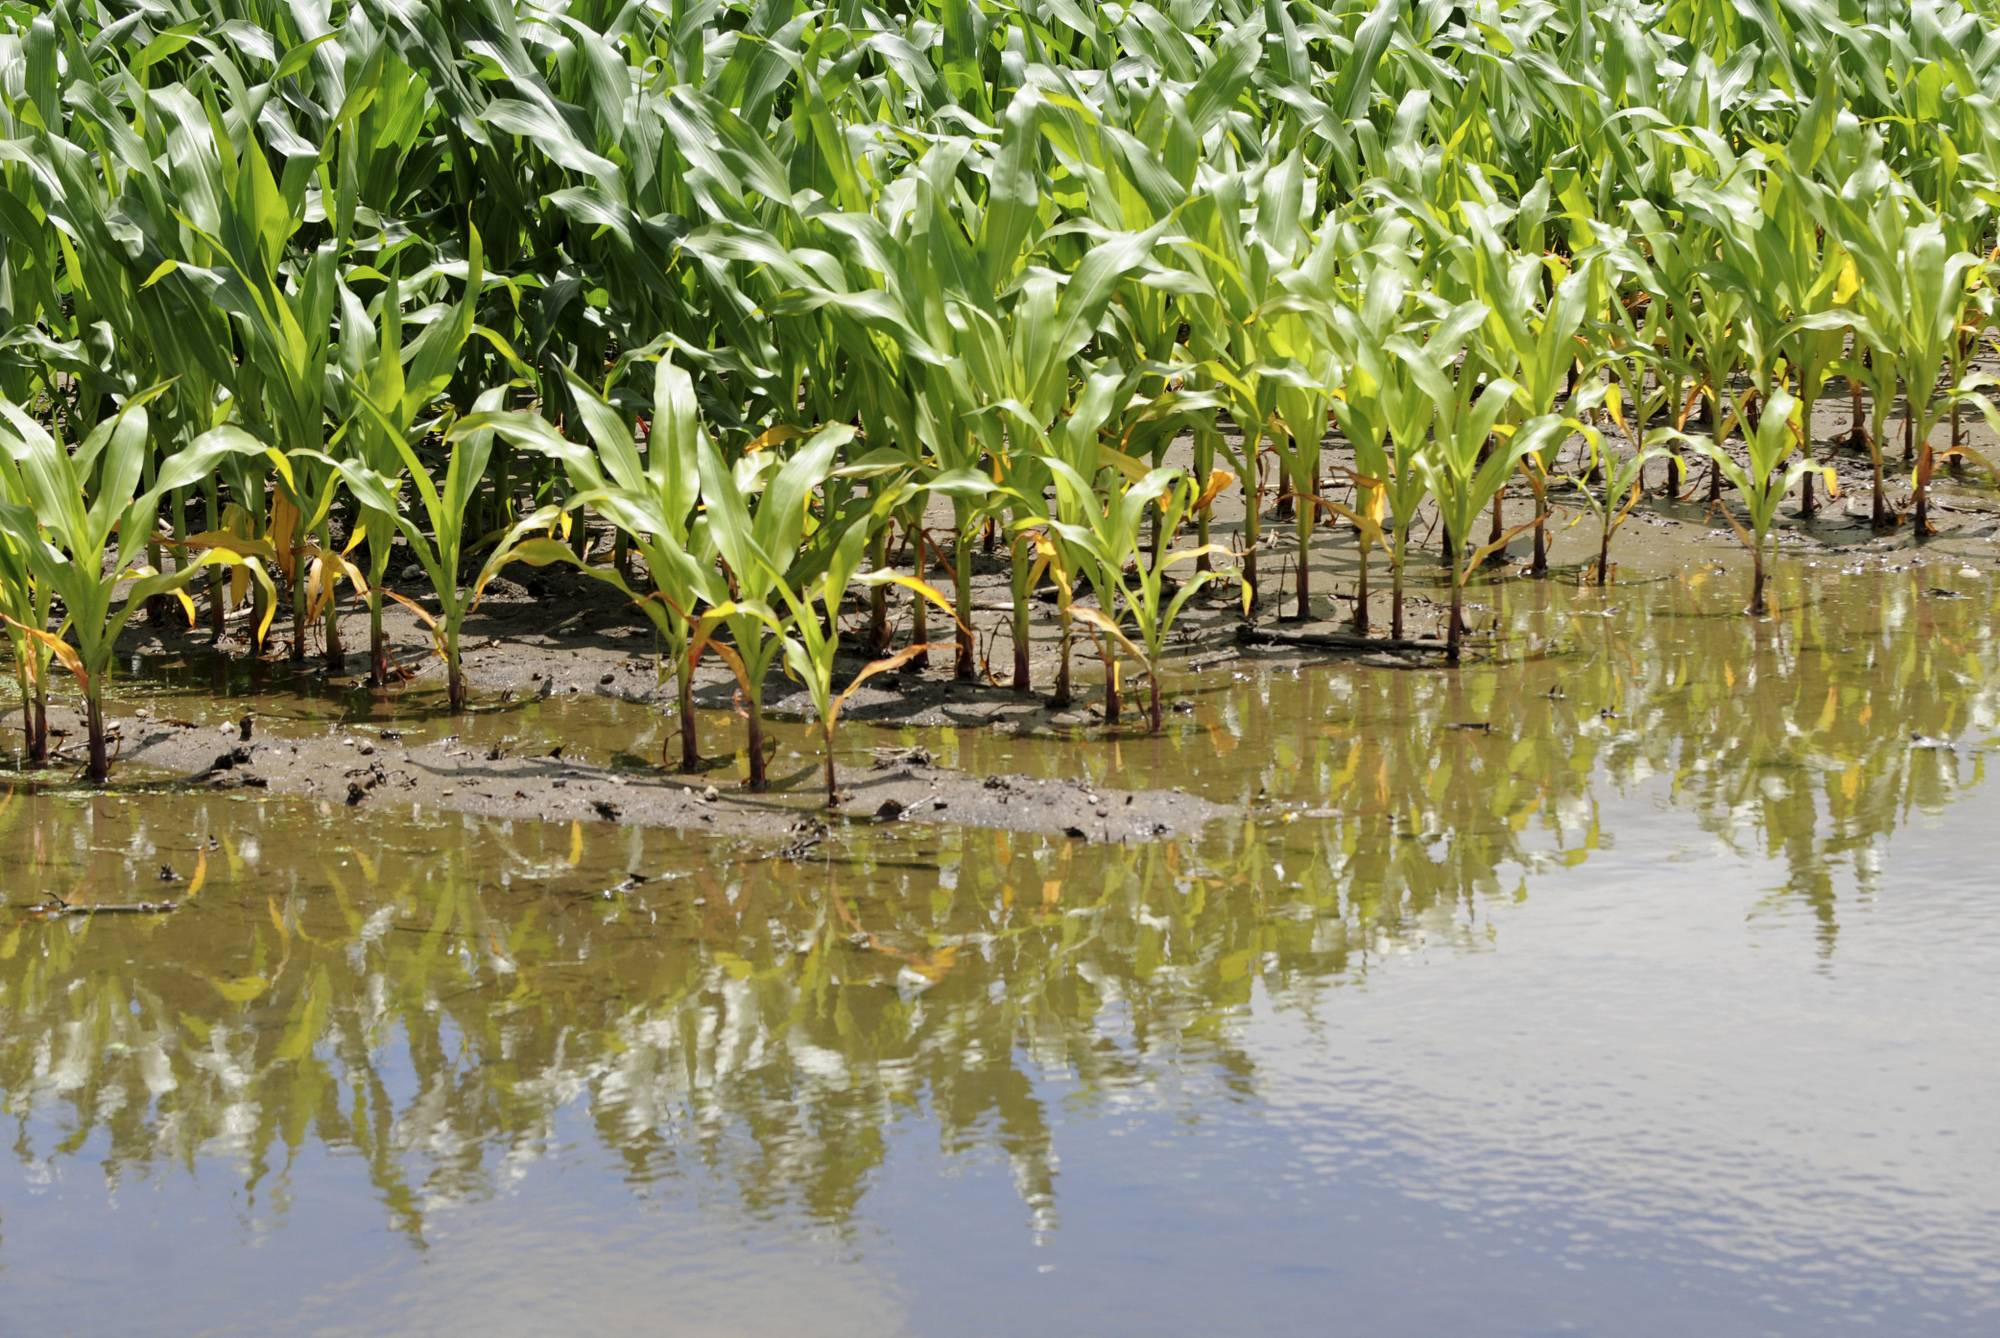 Corn crops are seen surrounded by water on Wednesday, July 2, at a farm in Silvis, Illinois. A round of severe thunderstorms Monday, June 30, damaged area crops and dumped a record amount of rain. The U.S. Department of Agriculture said this week that most of Illinois' corn crop is in great shape. But some farmers in western and central Illinois suffered extensive damage from the storms.